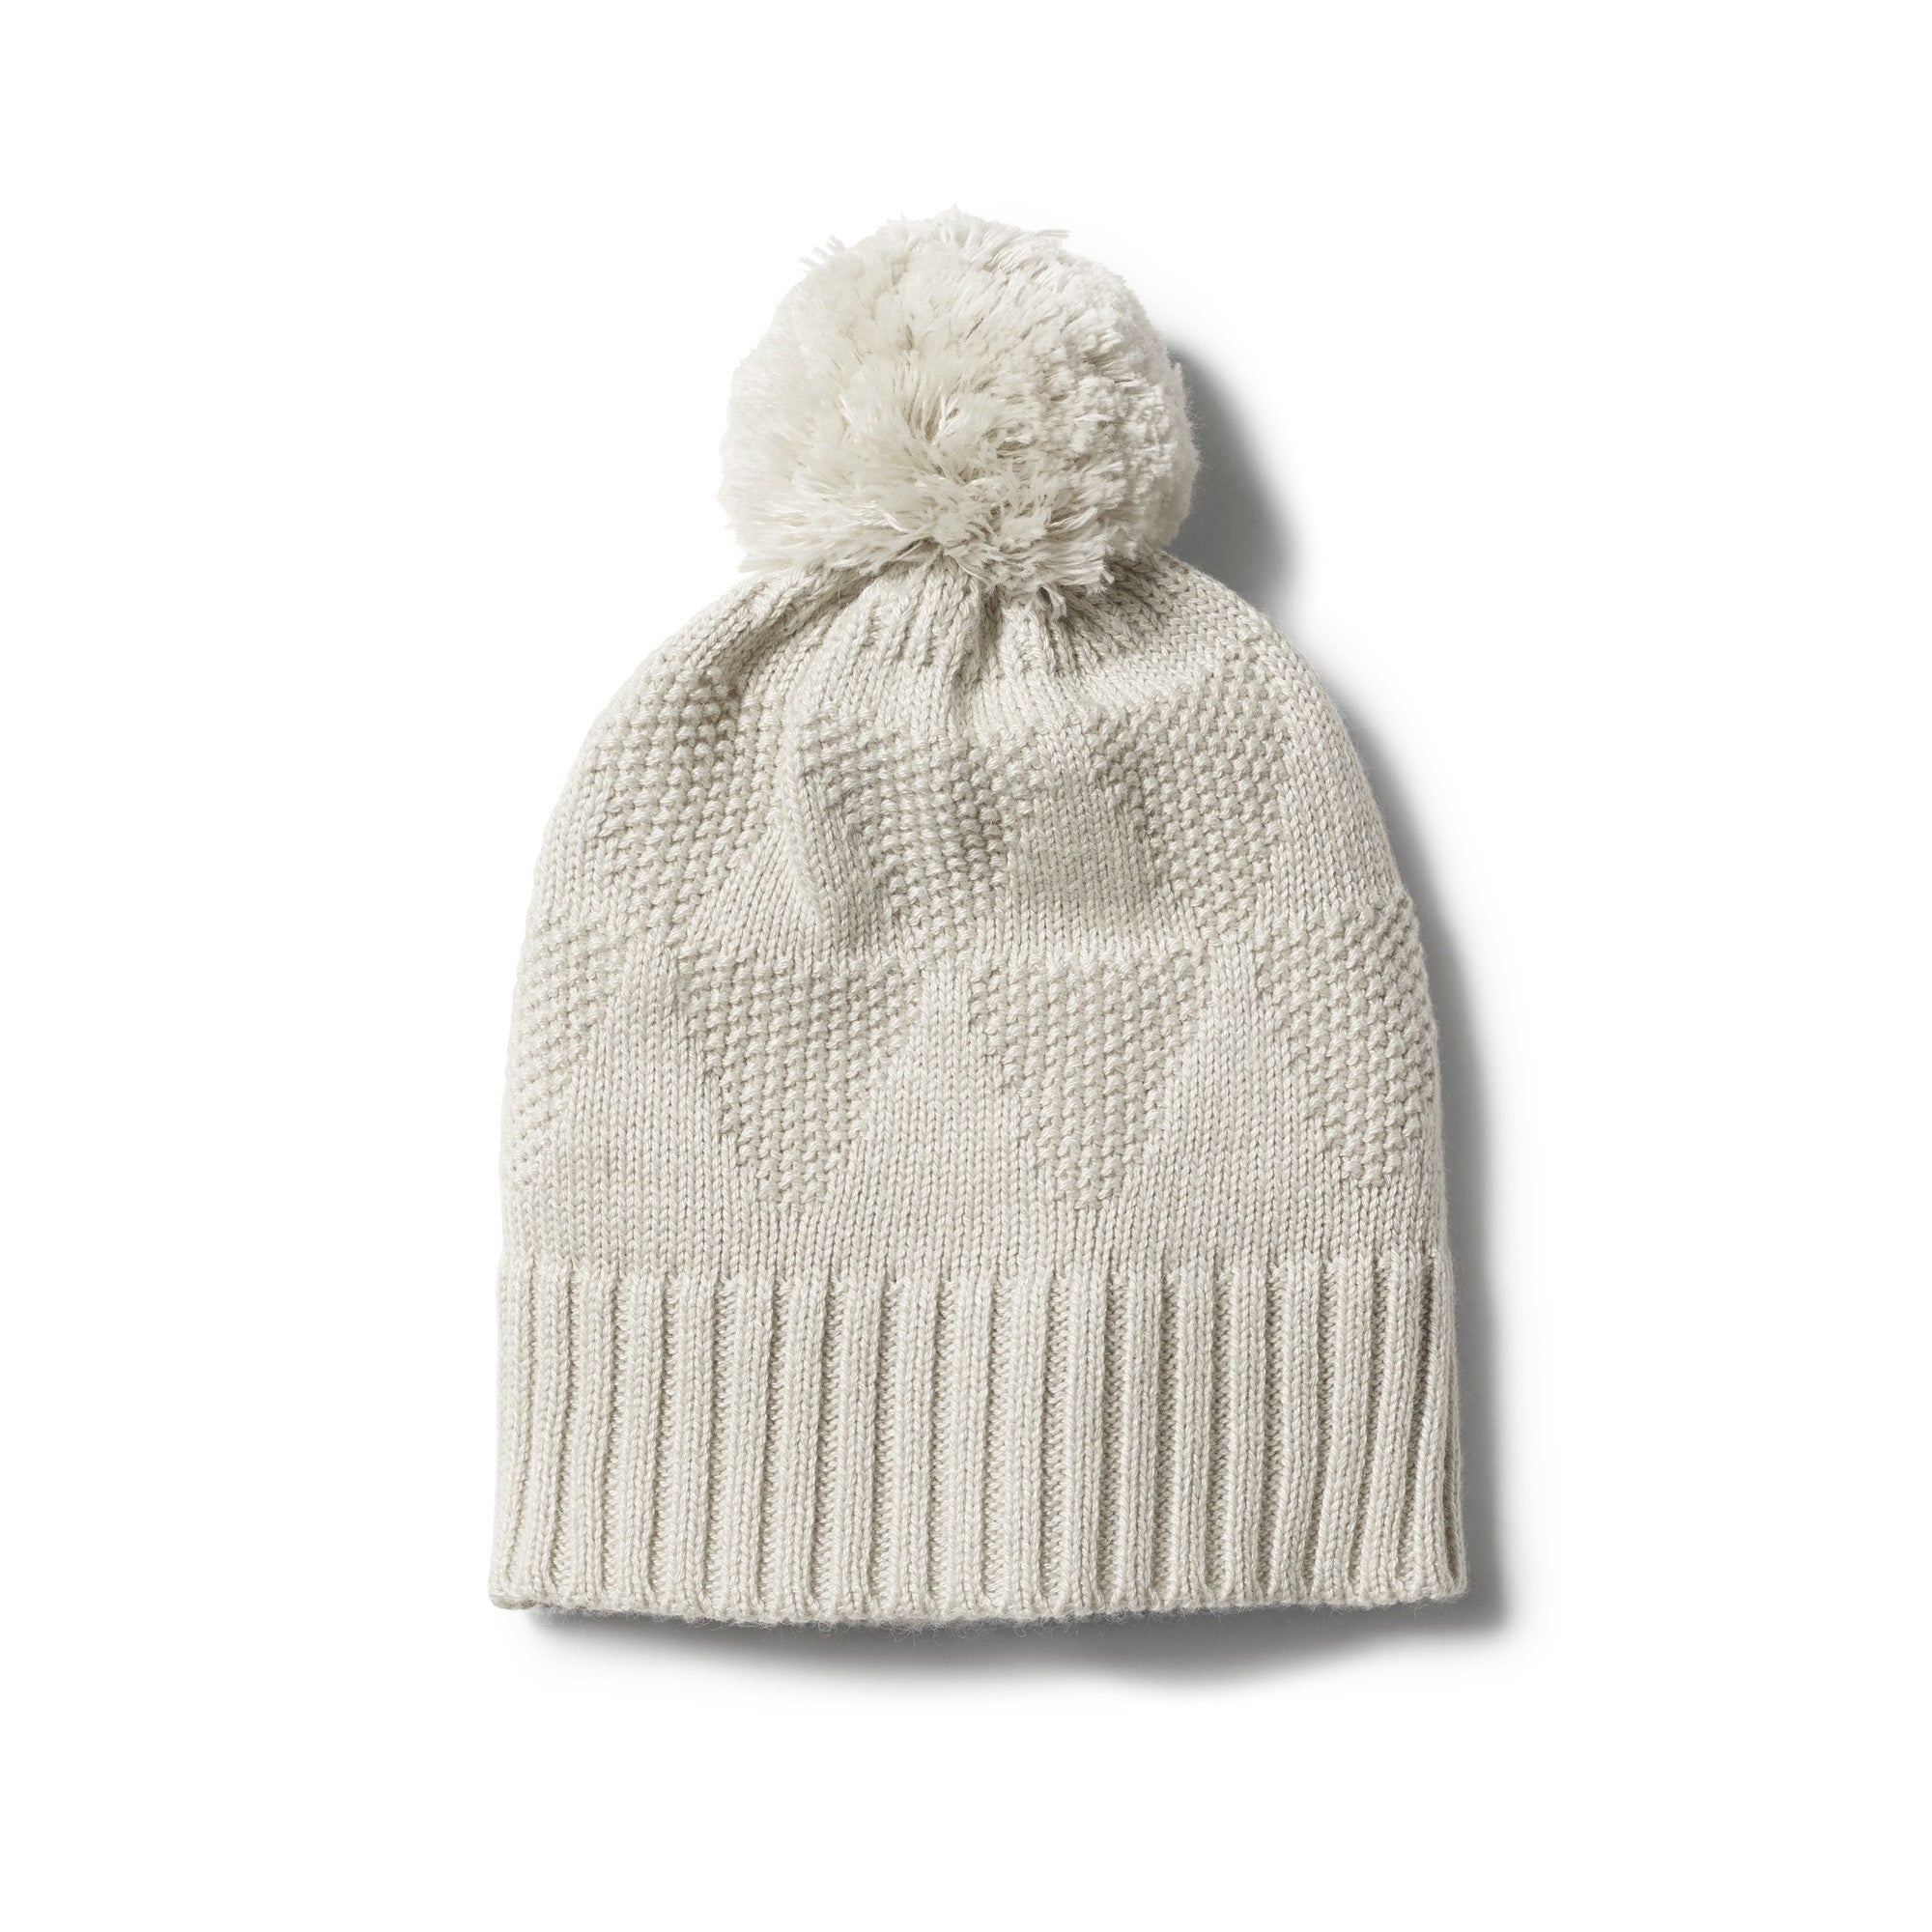 Wilson & Frenchy Ice Grey Knit Hat with Pom Pom